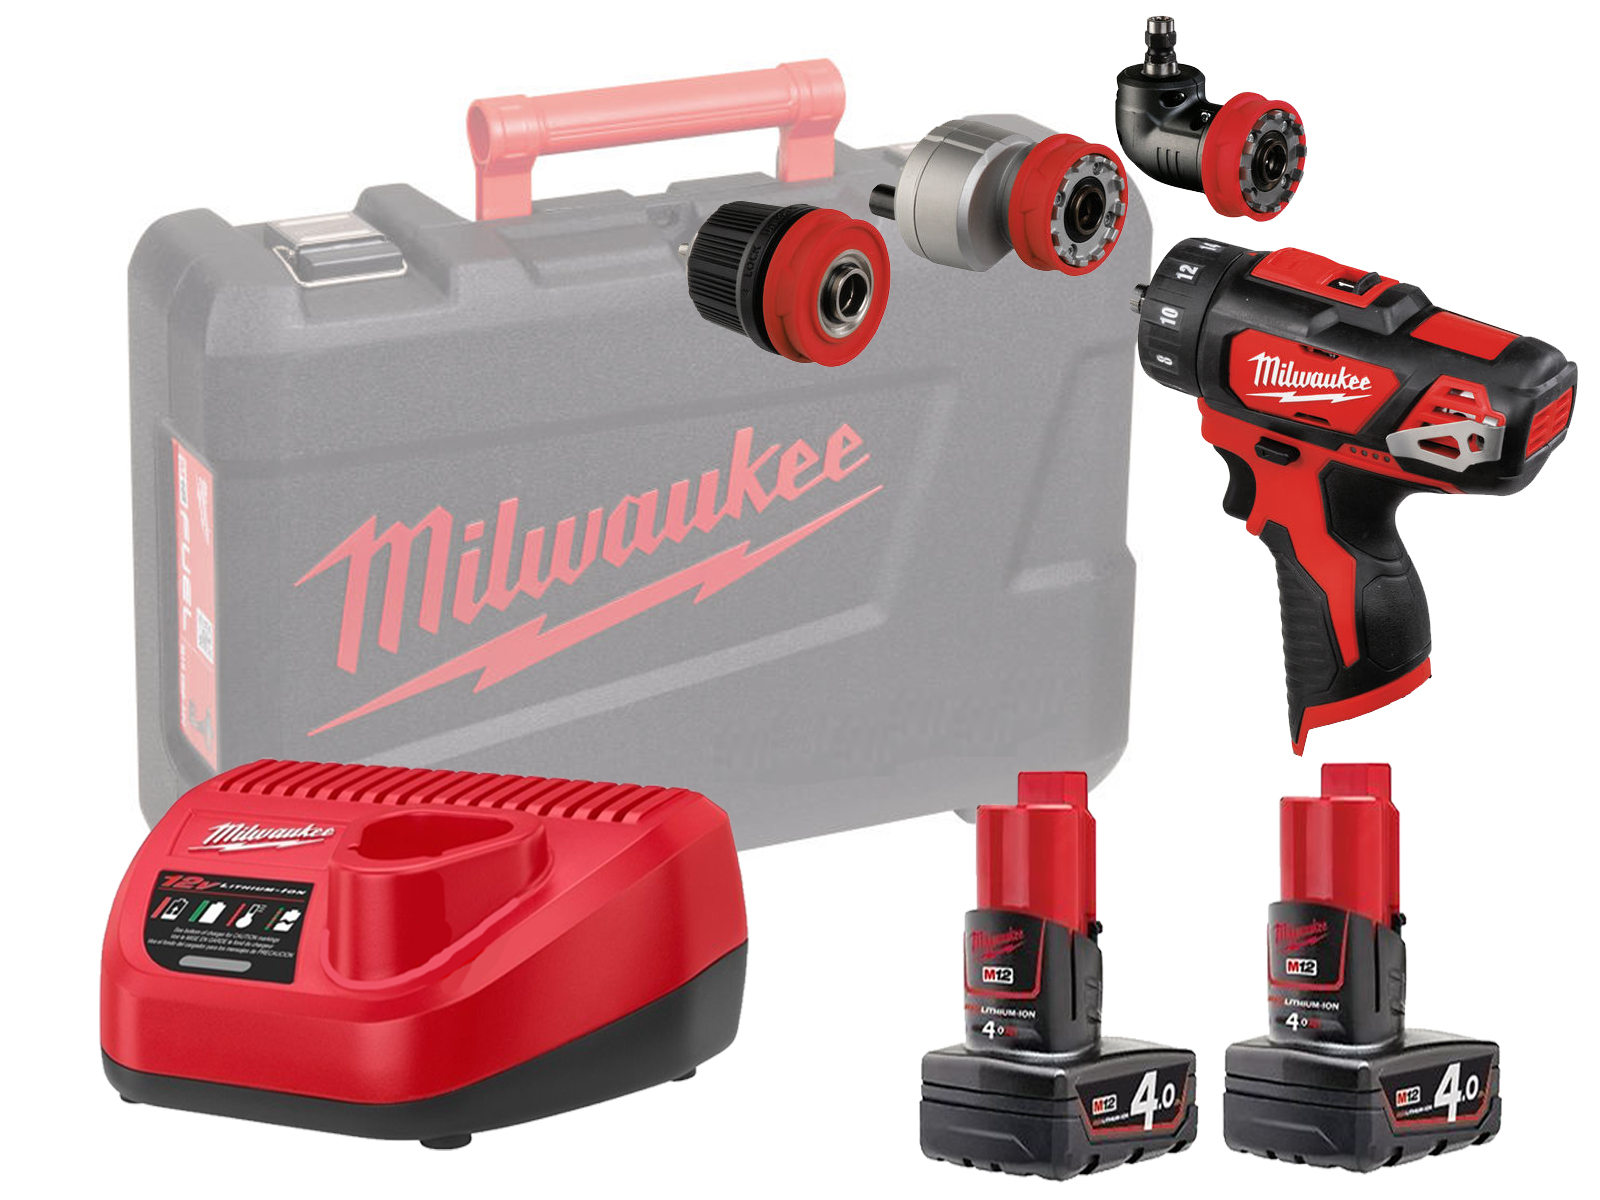 MILWAUKEE 12V DRILL / HEX / OFFSET / RIGHT ANGLE - M12BDDXKIT - 4.0AH PACK